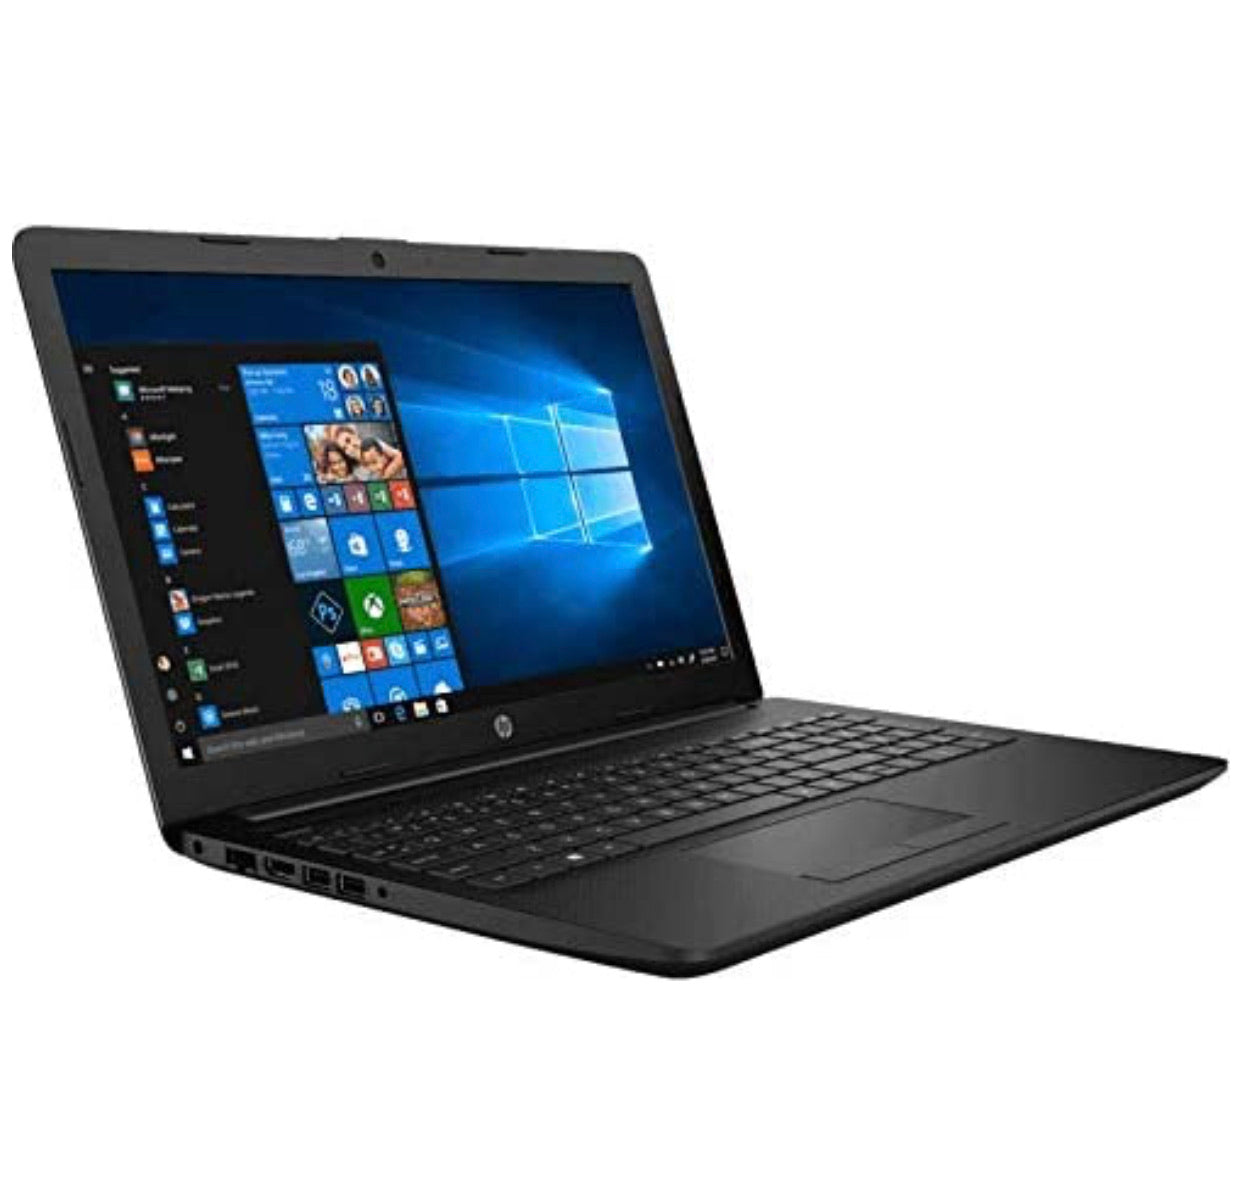 HP Intel® core i3® (8th Generation) 4GB RAM (HP 15-DA0411TU)- (Sparkling Black) 1TB Hard Disk 15.6inch with WINDOWS 10 Home, MS Office & M2 Solt - E MIRA ROAD